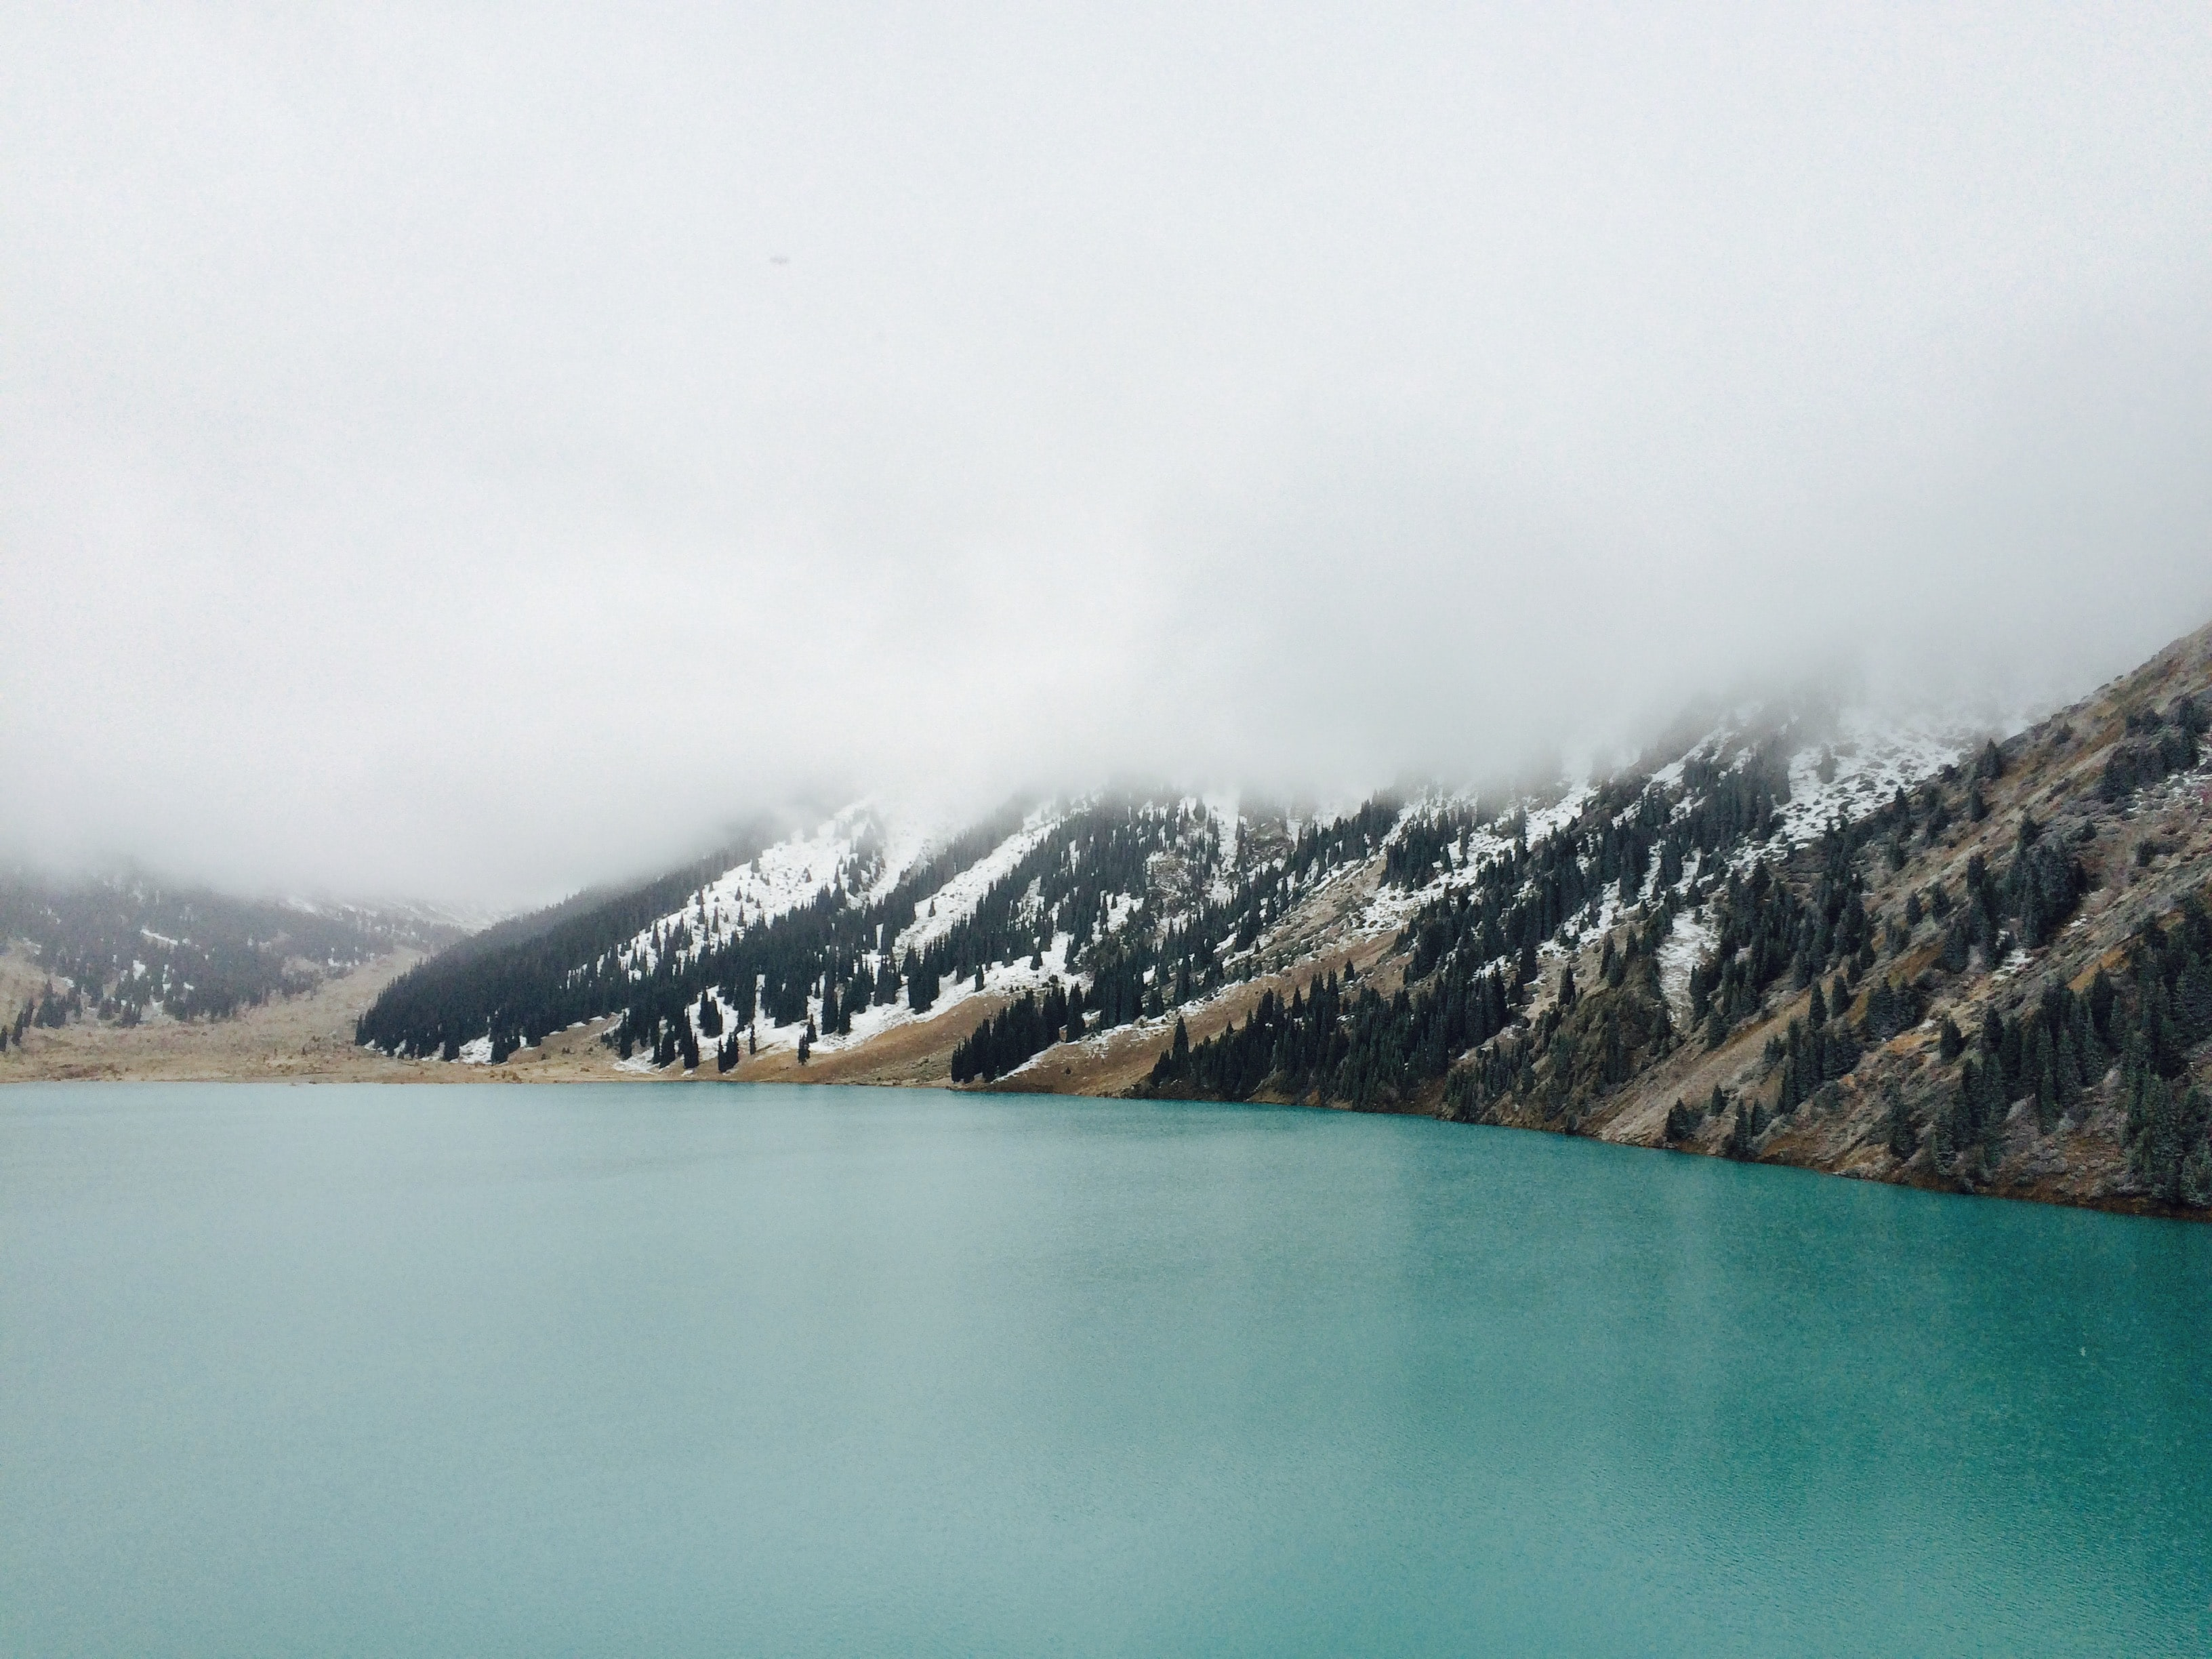 A mountain lake with snowy slopes covered in a thick layer of fog